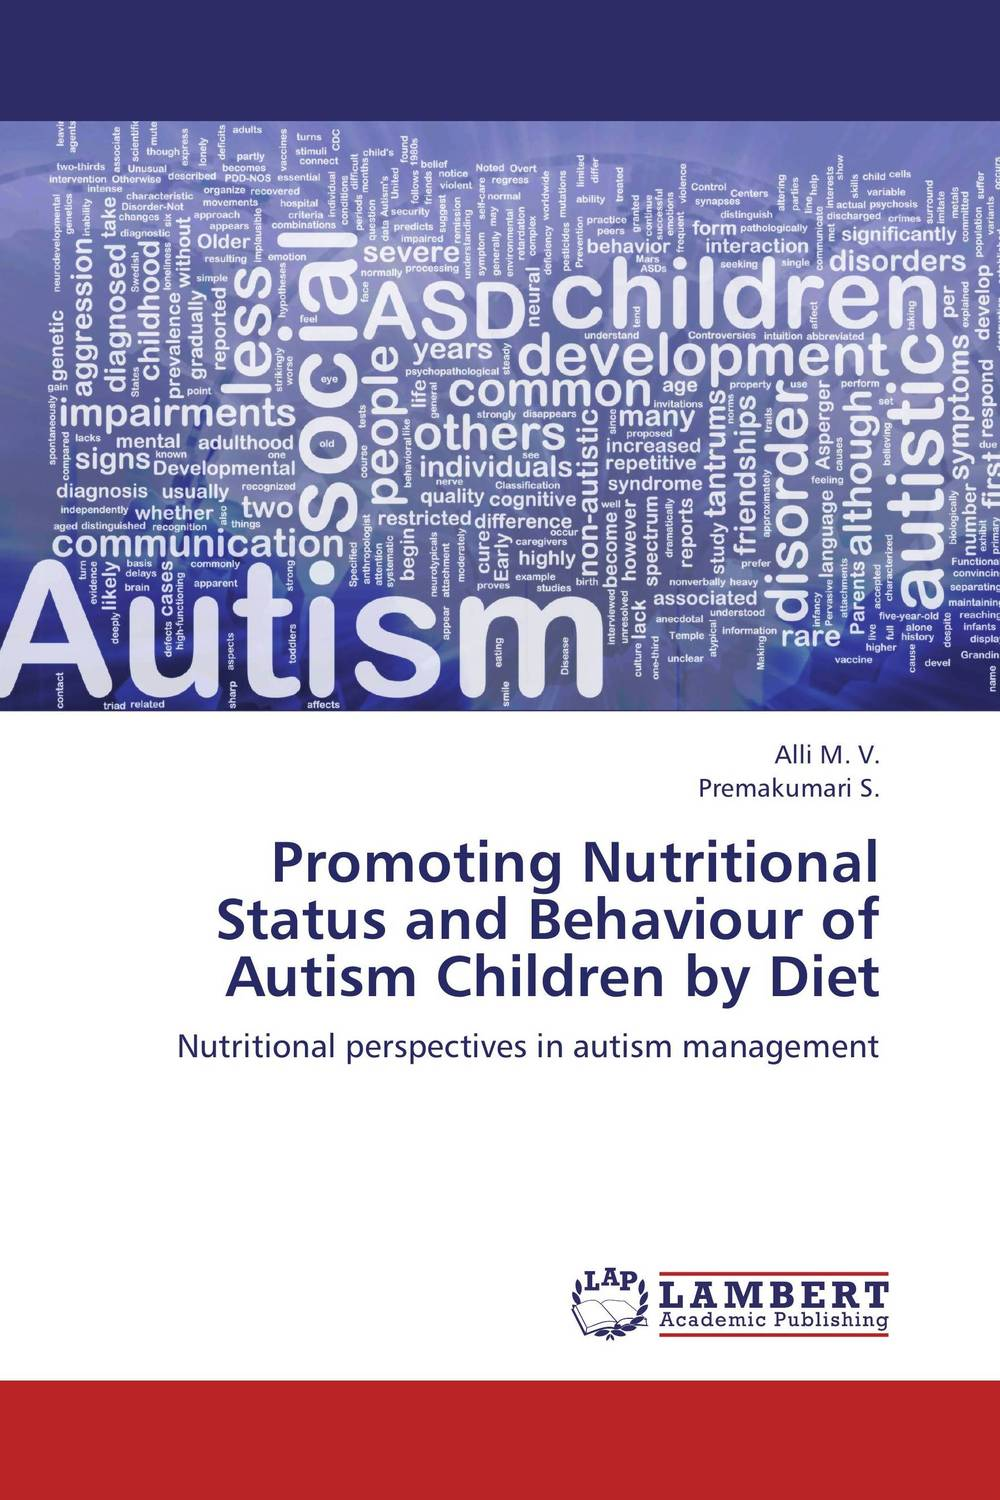 Promoting Nutritional Status and Behaviour of Autism Children by Diet